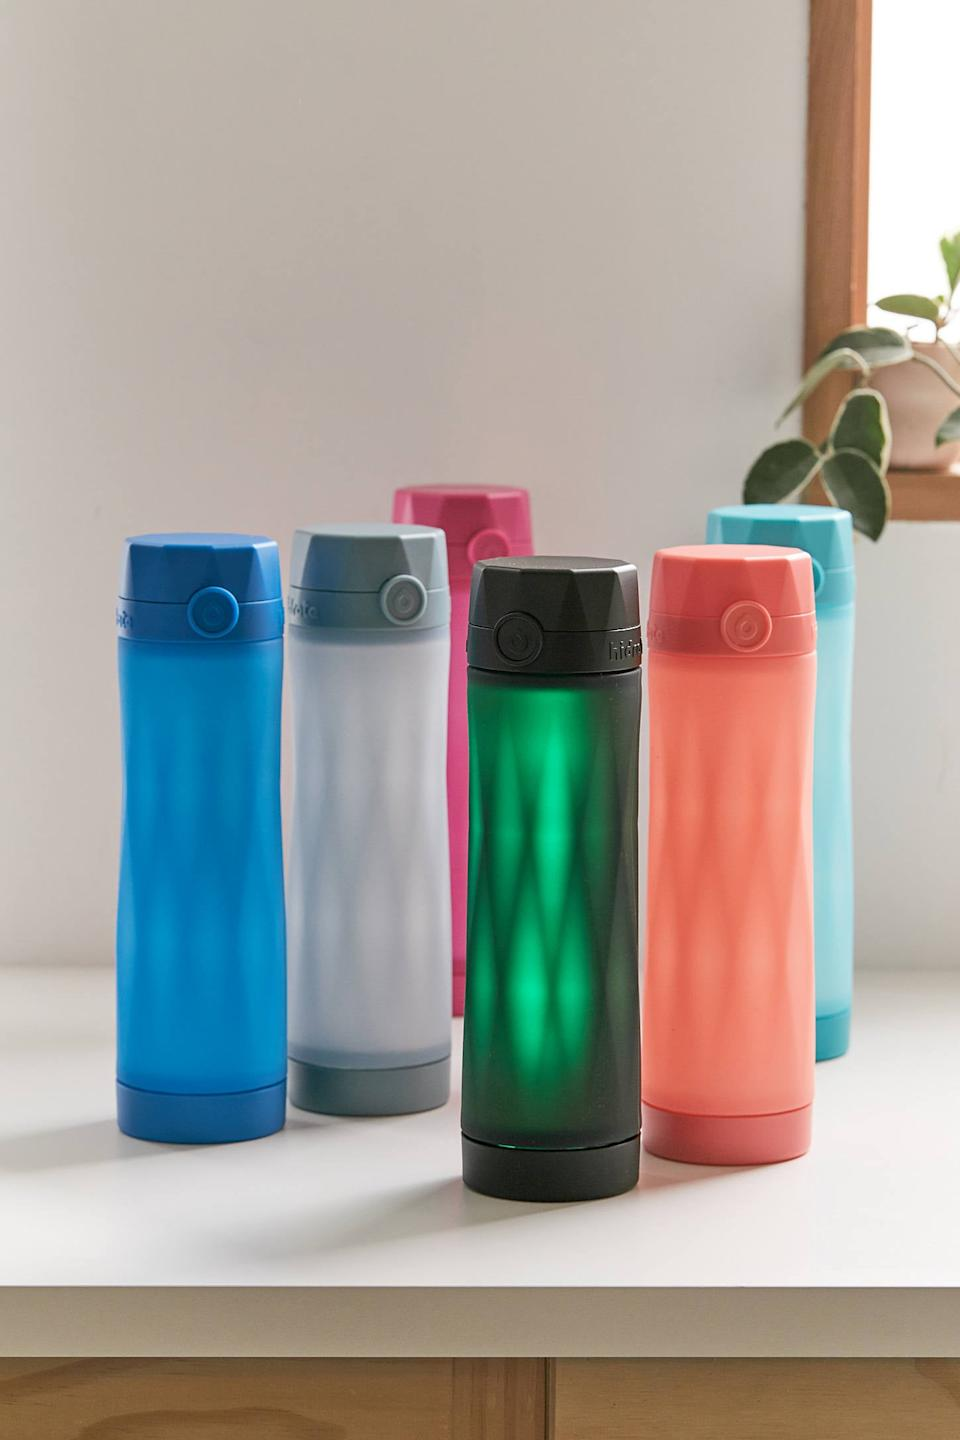 """<h2>Hidrate Spark 3 Smart Water Bottle</h2><br><strong>Best For: Dehydration </strong><br>I know, I know — it's not very Adult to forgo water in exchange for coffee or a diet coke, but it happens to the best of us; during long work hours or time spent with friends, it can be easy to neglect your daily hydration. <br><br>The Spark 3 takes forgetfulness out of the equation with its Bluetooth-enabled app tracker that will graciously remind you to <em>drink up</em>! The app helps you track your intake, while the mystical glowing effect keeps it in the forefront of your mind if you haven't taken a sip in a while. <br><br><strong>Urban Outfitters</strong> Hidrate Spark 3 Smart Water Bottle, $, available at <a href=""""https://go.skimresources.com/?id=30283X879131&url=https%3A%2F%2Fwww.urbanoutfitters.com%2Fshop%2Fhidrate-spark-3-smart-water-bottle%3F"""" rel=""""nofollow noopener"""" target=""""_blank"""" data-ylk=""""slk:Urban Outfitters"""" class=""""link rapid-noclick-resp"""">Urban Outfitters</a>"""